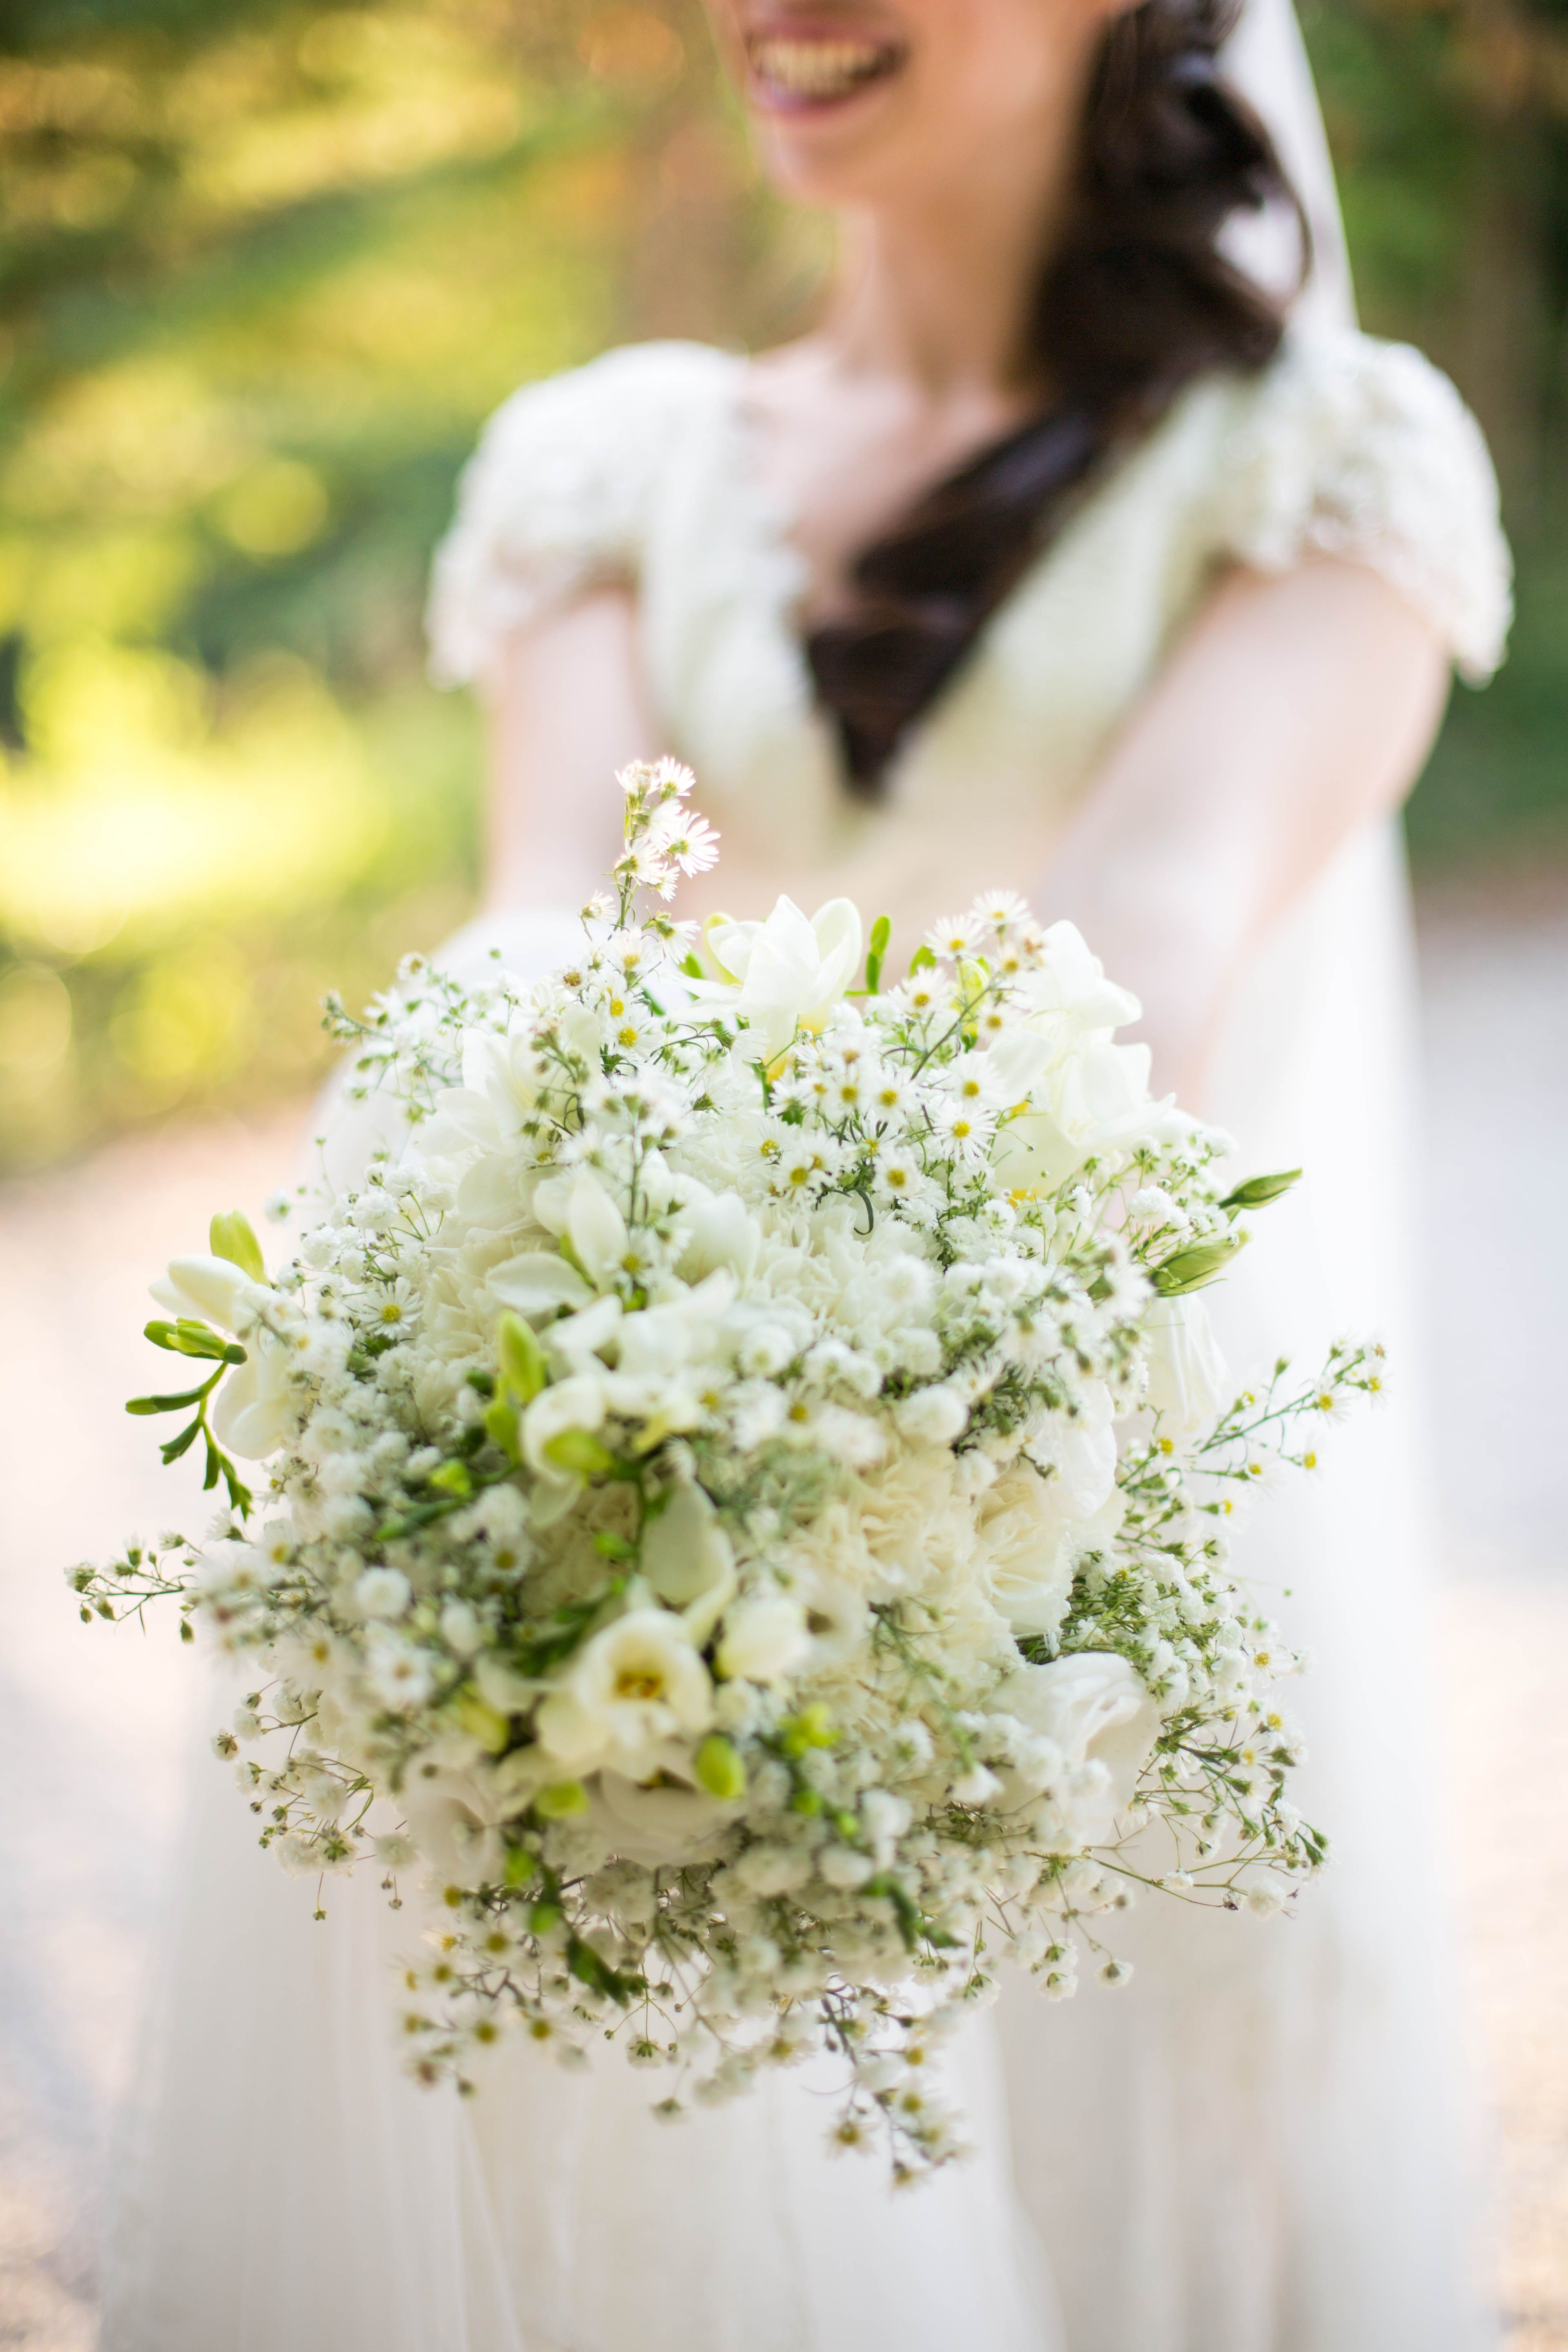 wedding in provence fleurs bouquets de mari e pinterest mariage en provence gypsophile et. Black Bedroom Furniture Sets. Home Design Ideas